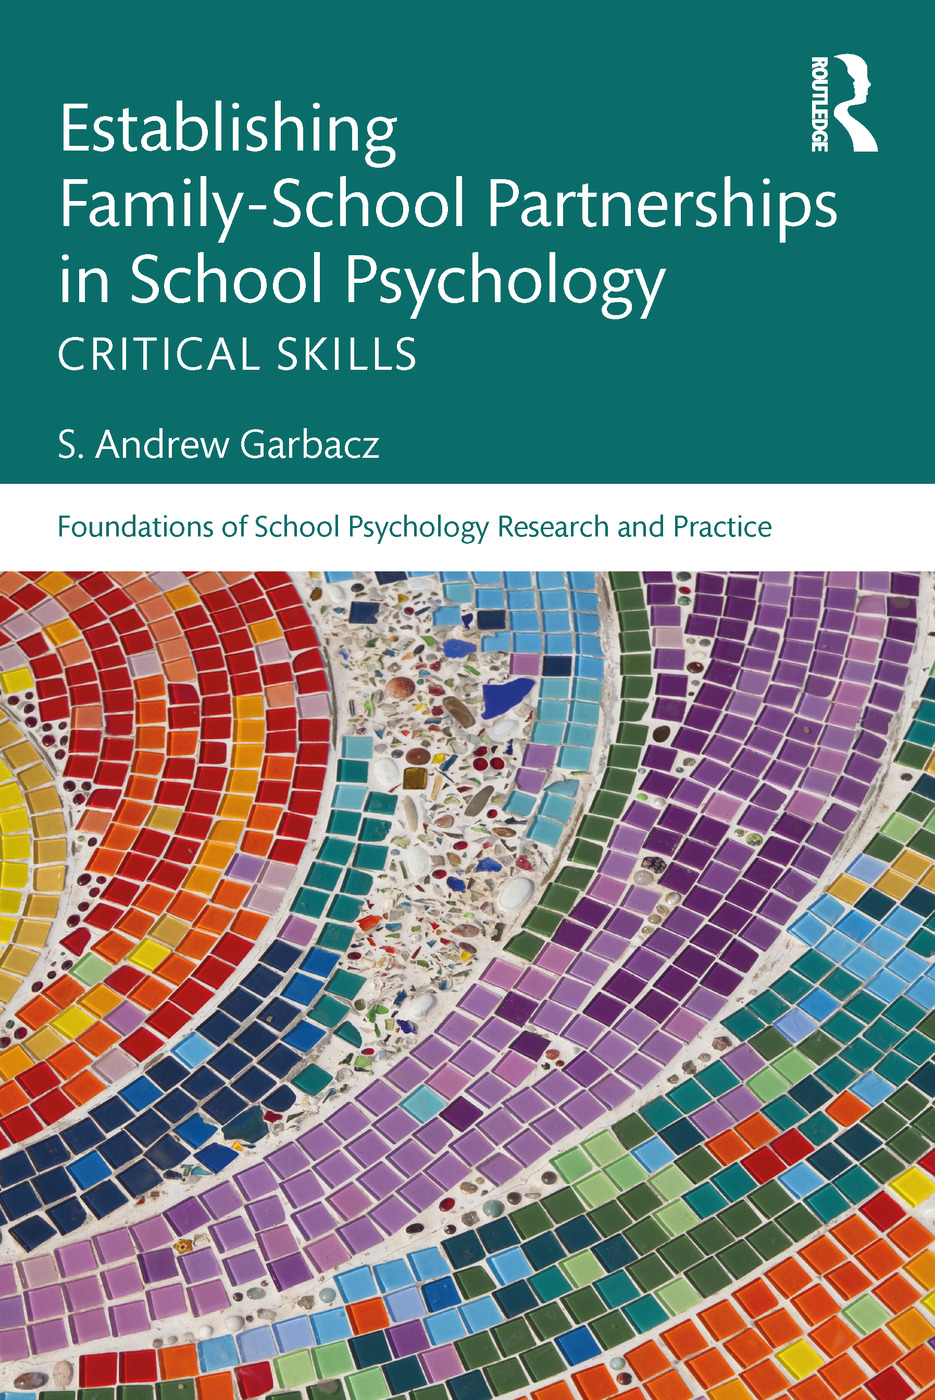 Establishing Family-School Partnerships in School Psychology: Critical Skills book cover